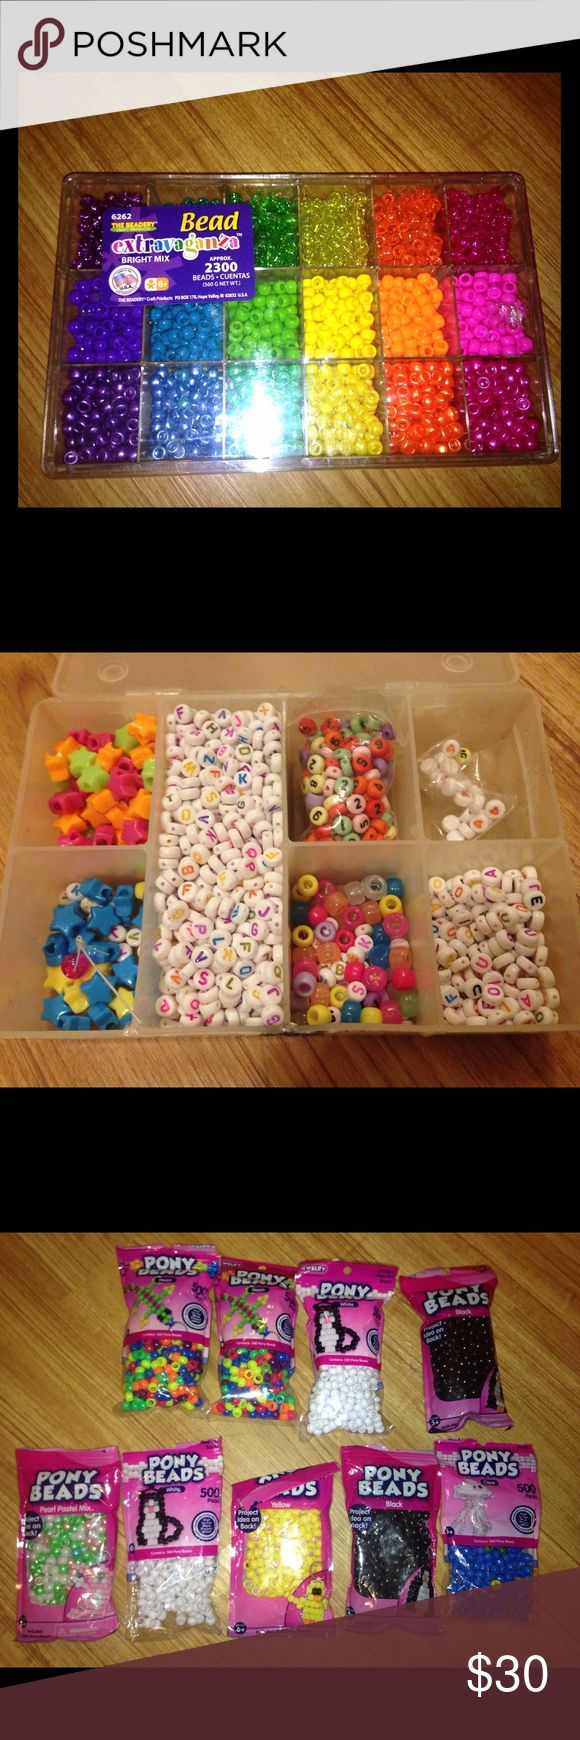 💋BUNDLE OF THOUSANDS OF KANDI PONY BEADS-see pics PRICE IS HIGH BC ADDITIONAL SHIPPING FEES FOR WEIGHT! Thousands of Pony Beads- all varieties: bright, neon, glitter, clear, glow in dark, letter, all colors, etc. Perfect for kids or for those who would love accessories for raves and edm events. This large collection took awhile to build, I organized them in boxes that you see. Don't need anymore, these would love to go to a new owner and be used! 😸 Listing and price is for everything in…